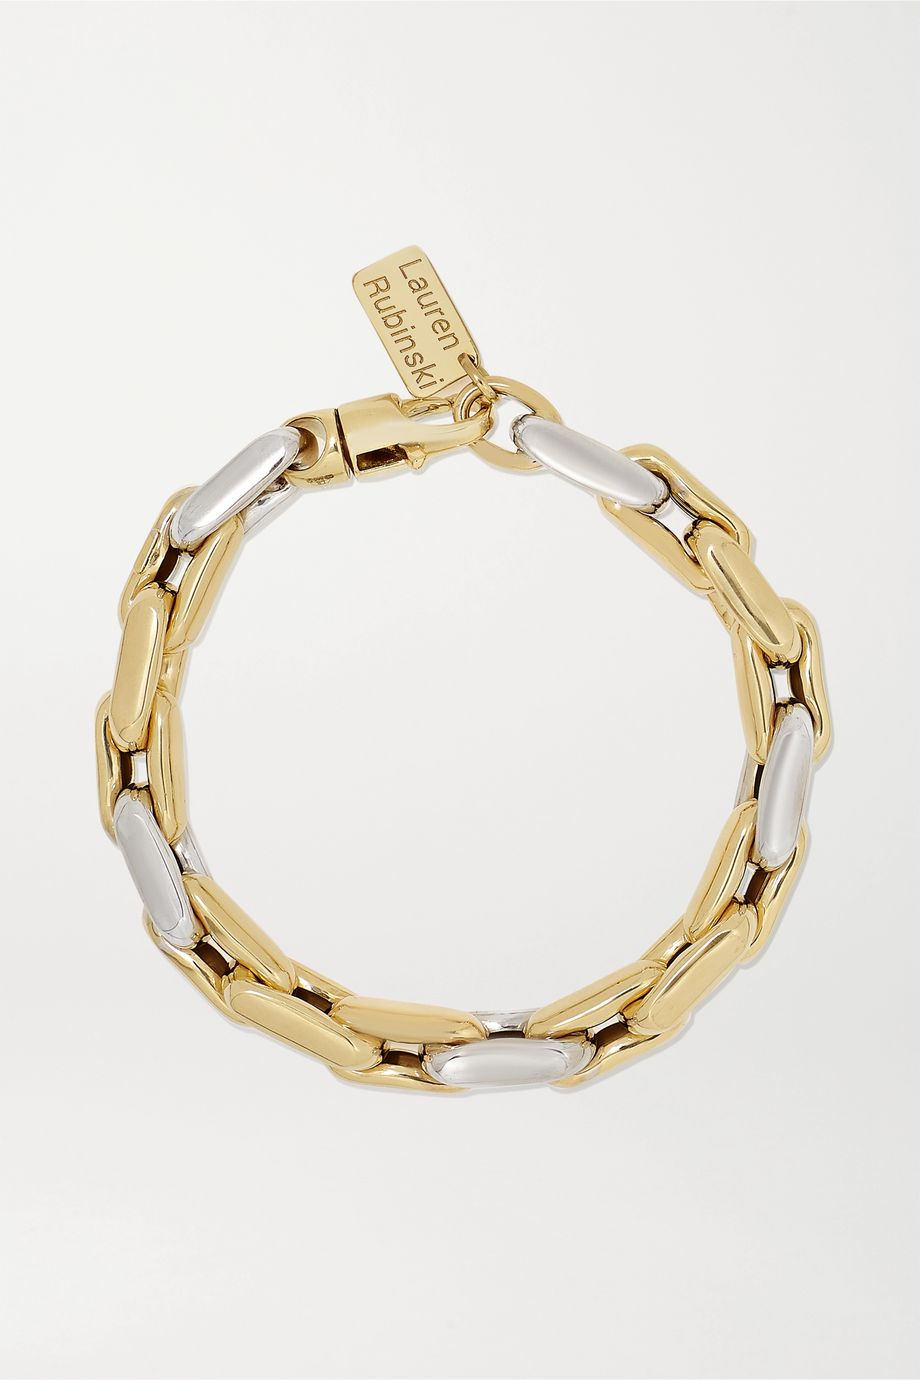 Lauren Rubinski Small 14-karat white and yellow gold bracelet